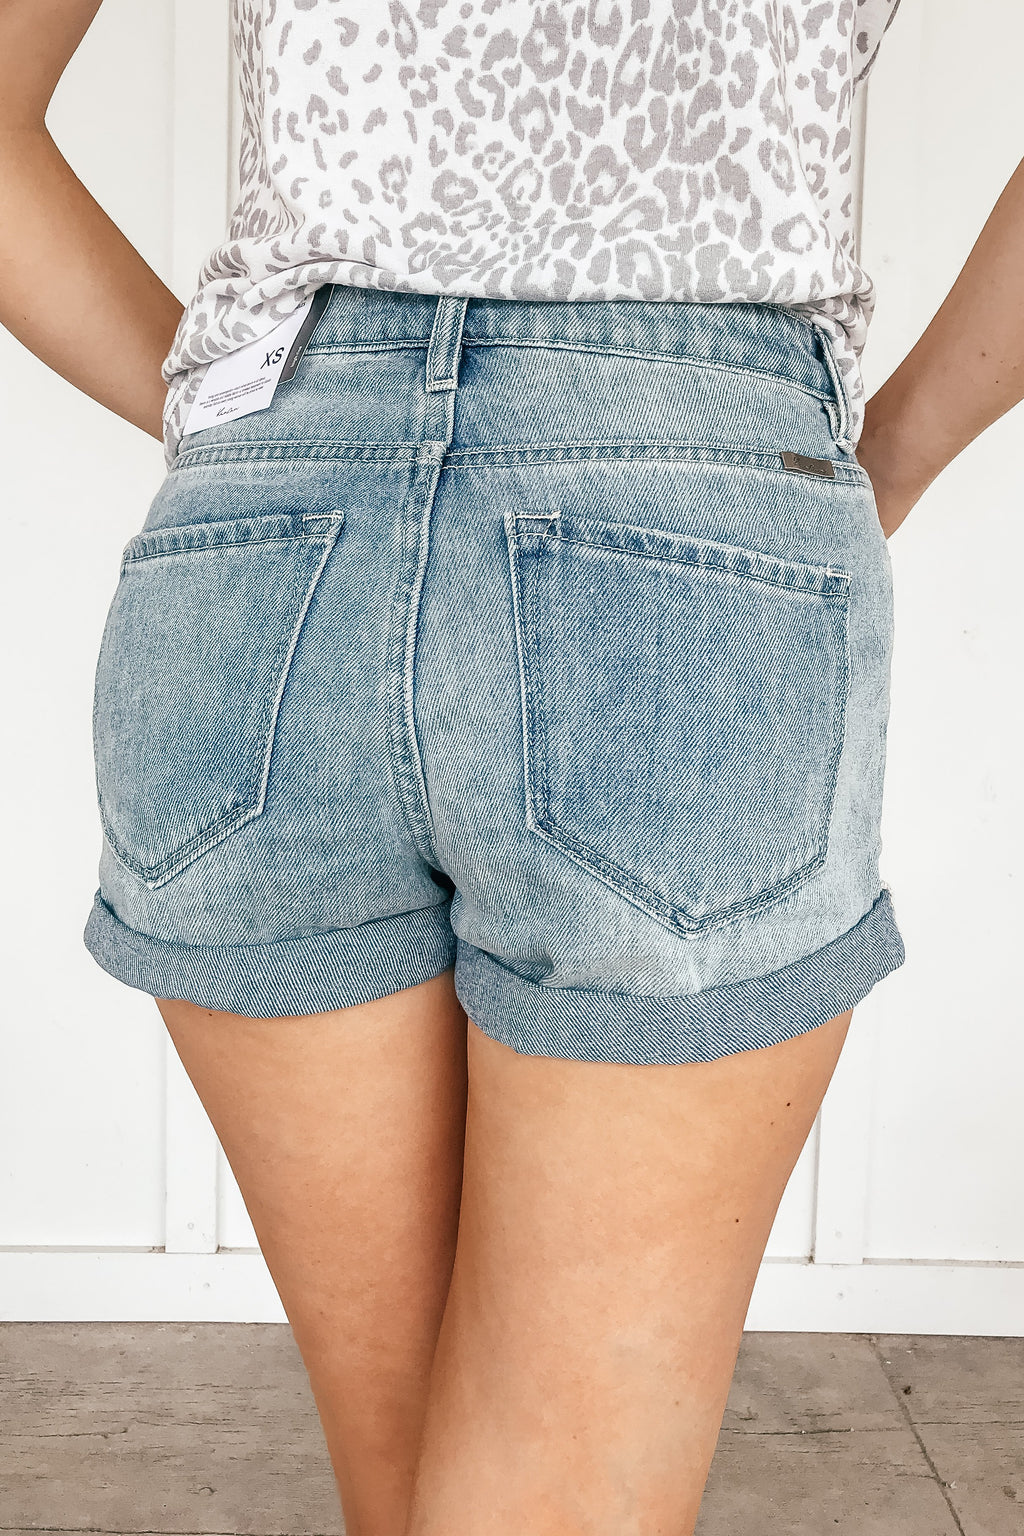 Kennedy Kancan Shorts - LURE Boutique